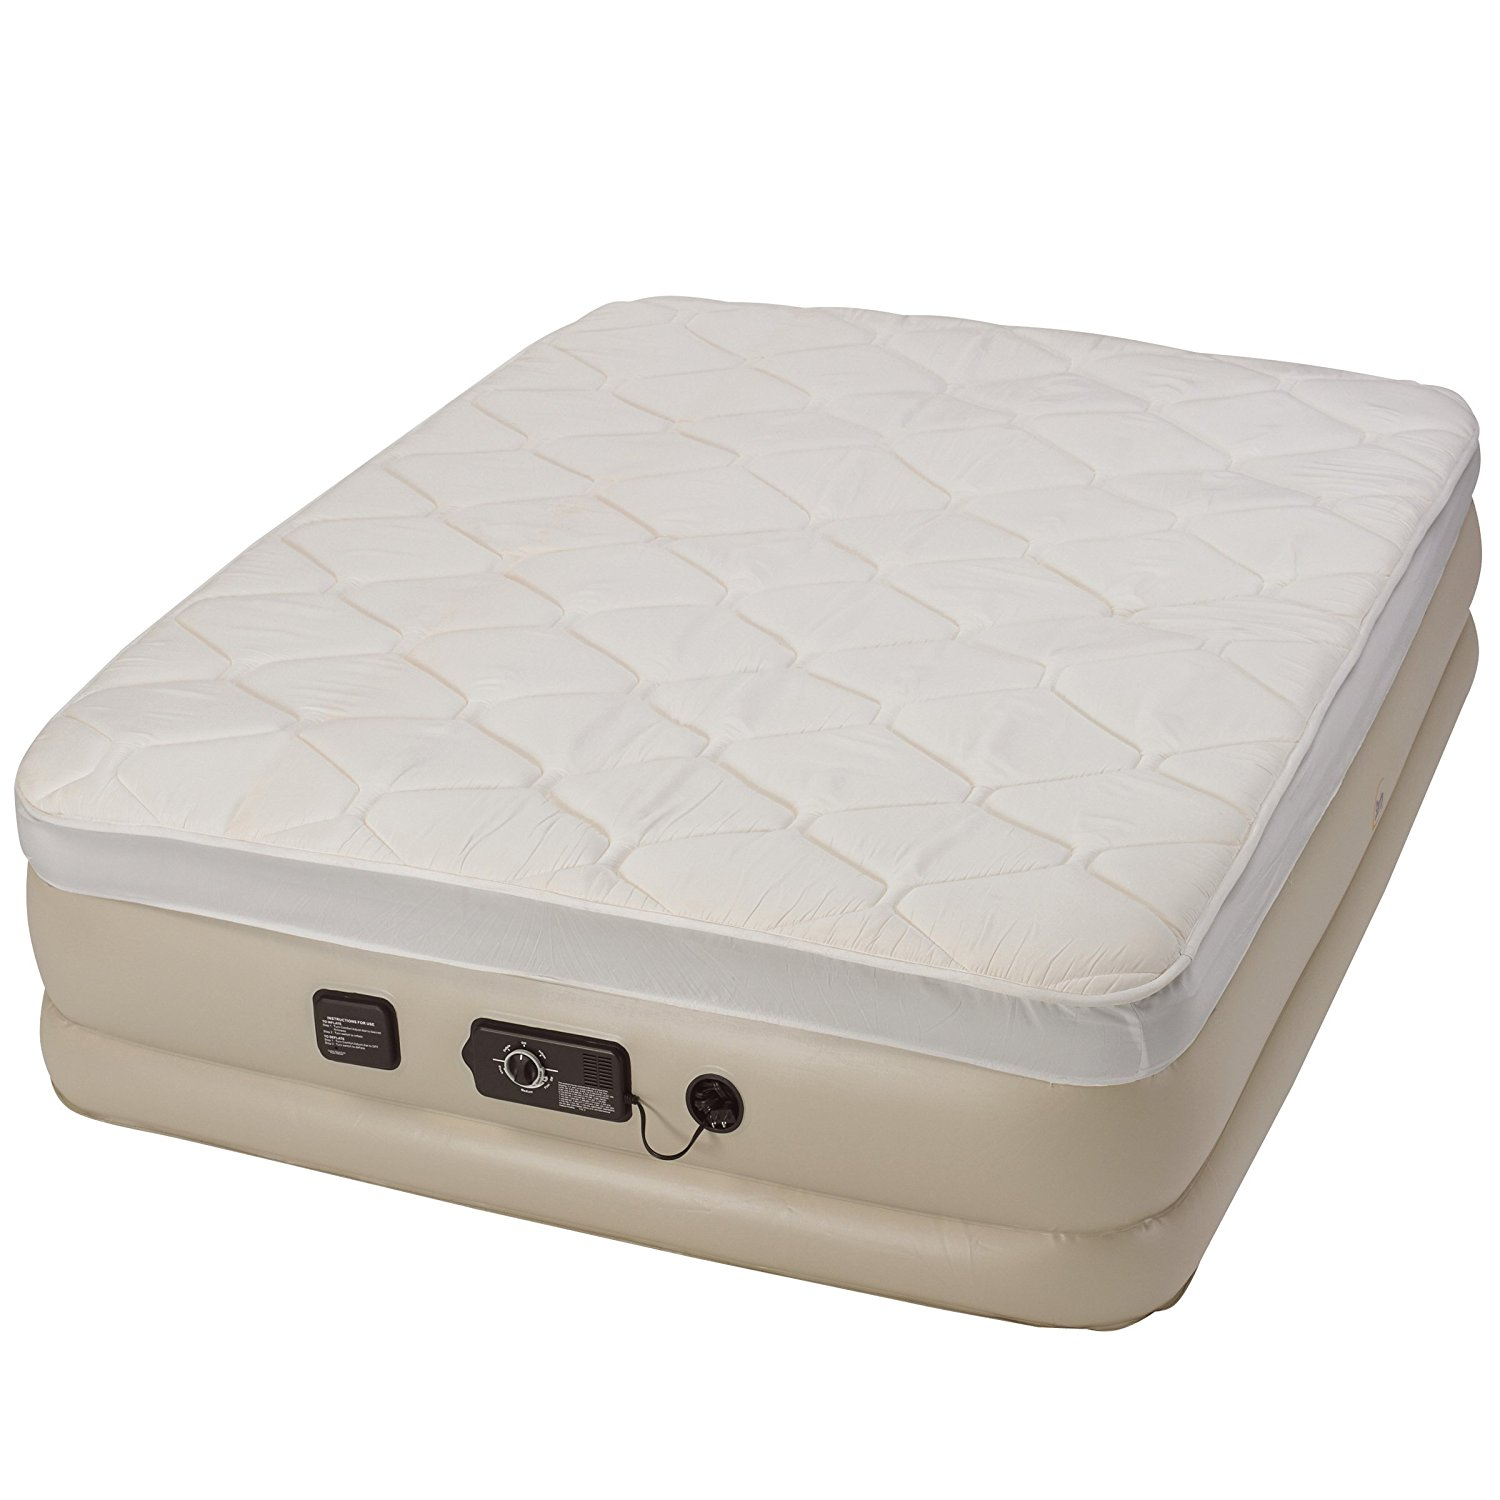 Serta Raised Comfort Coil Airbed with NeverFlat Pump inflated